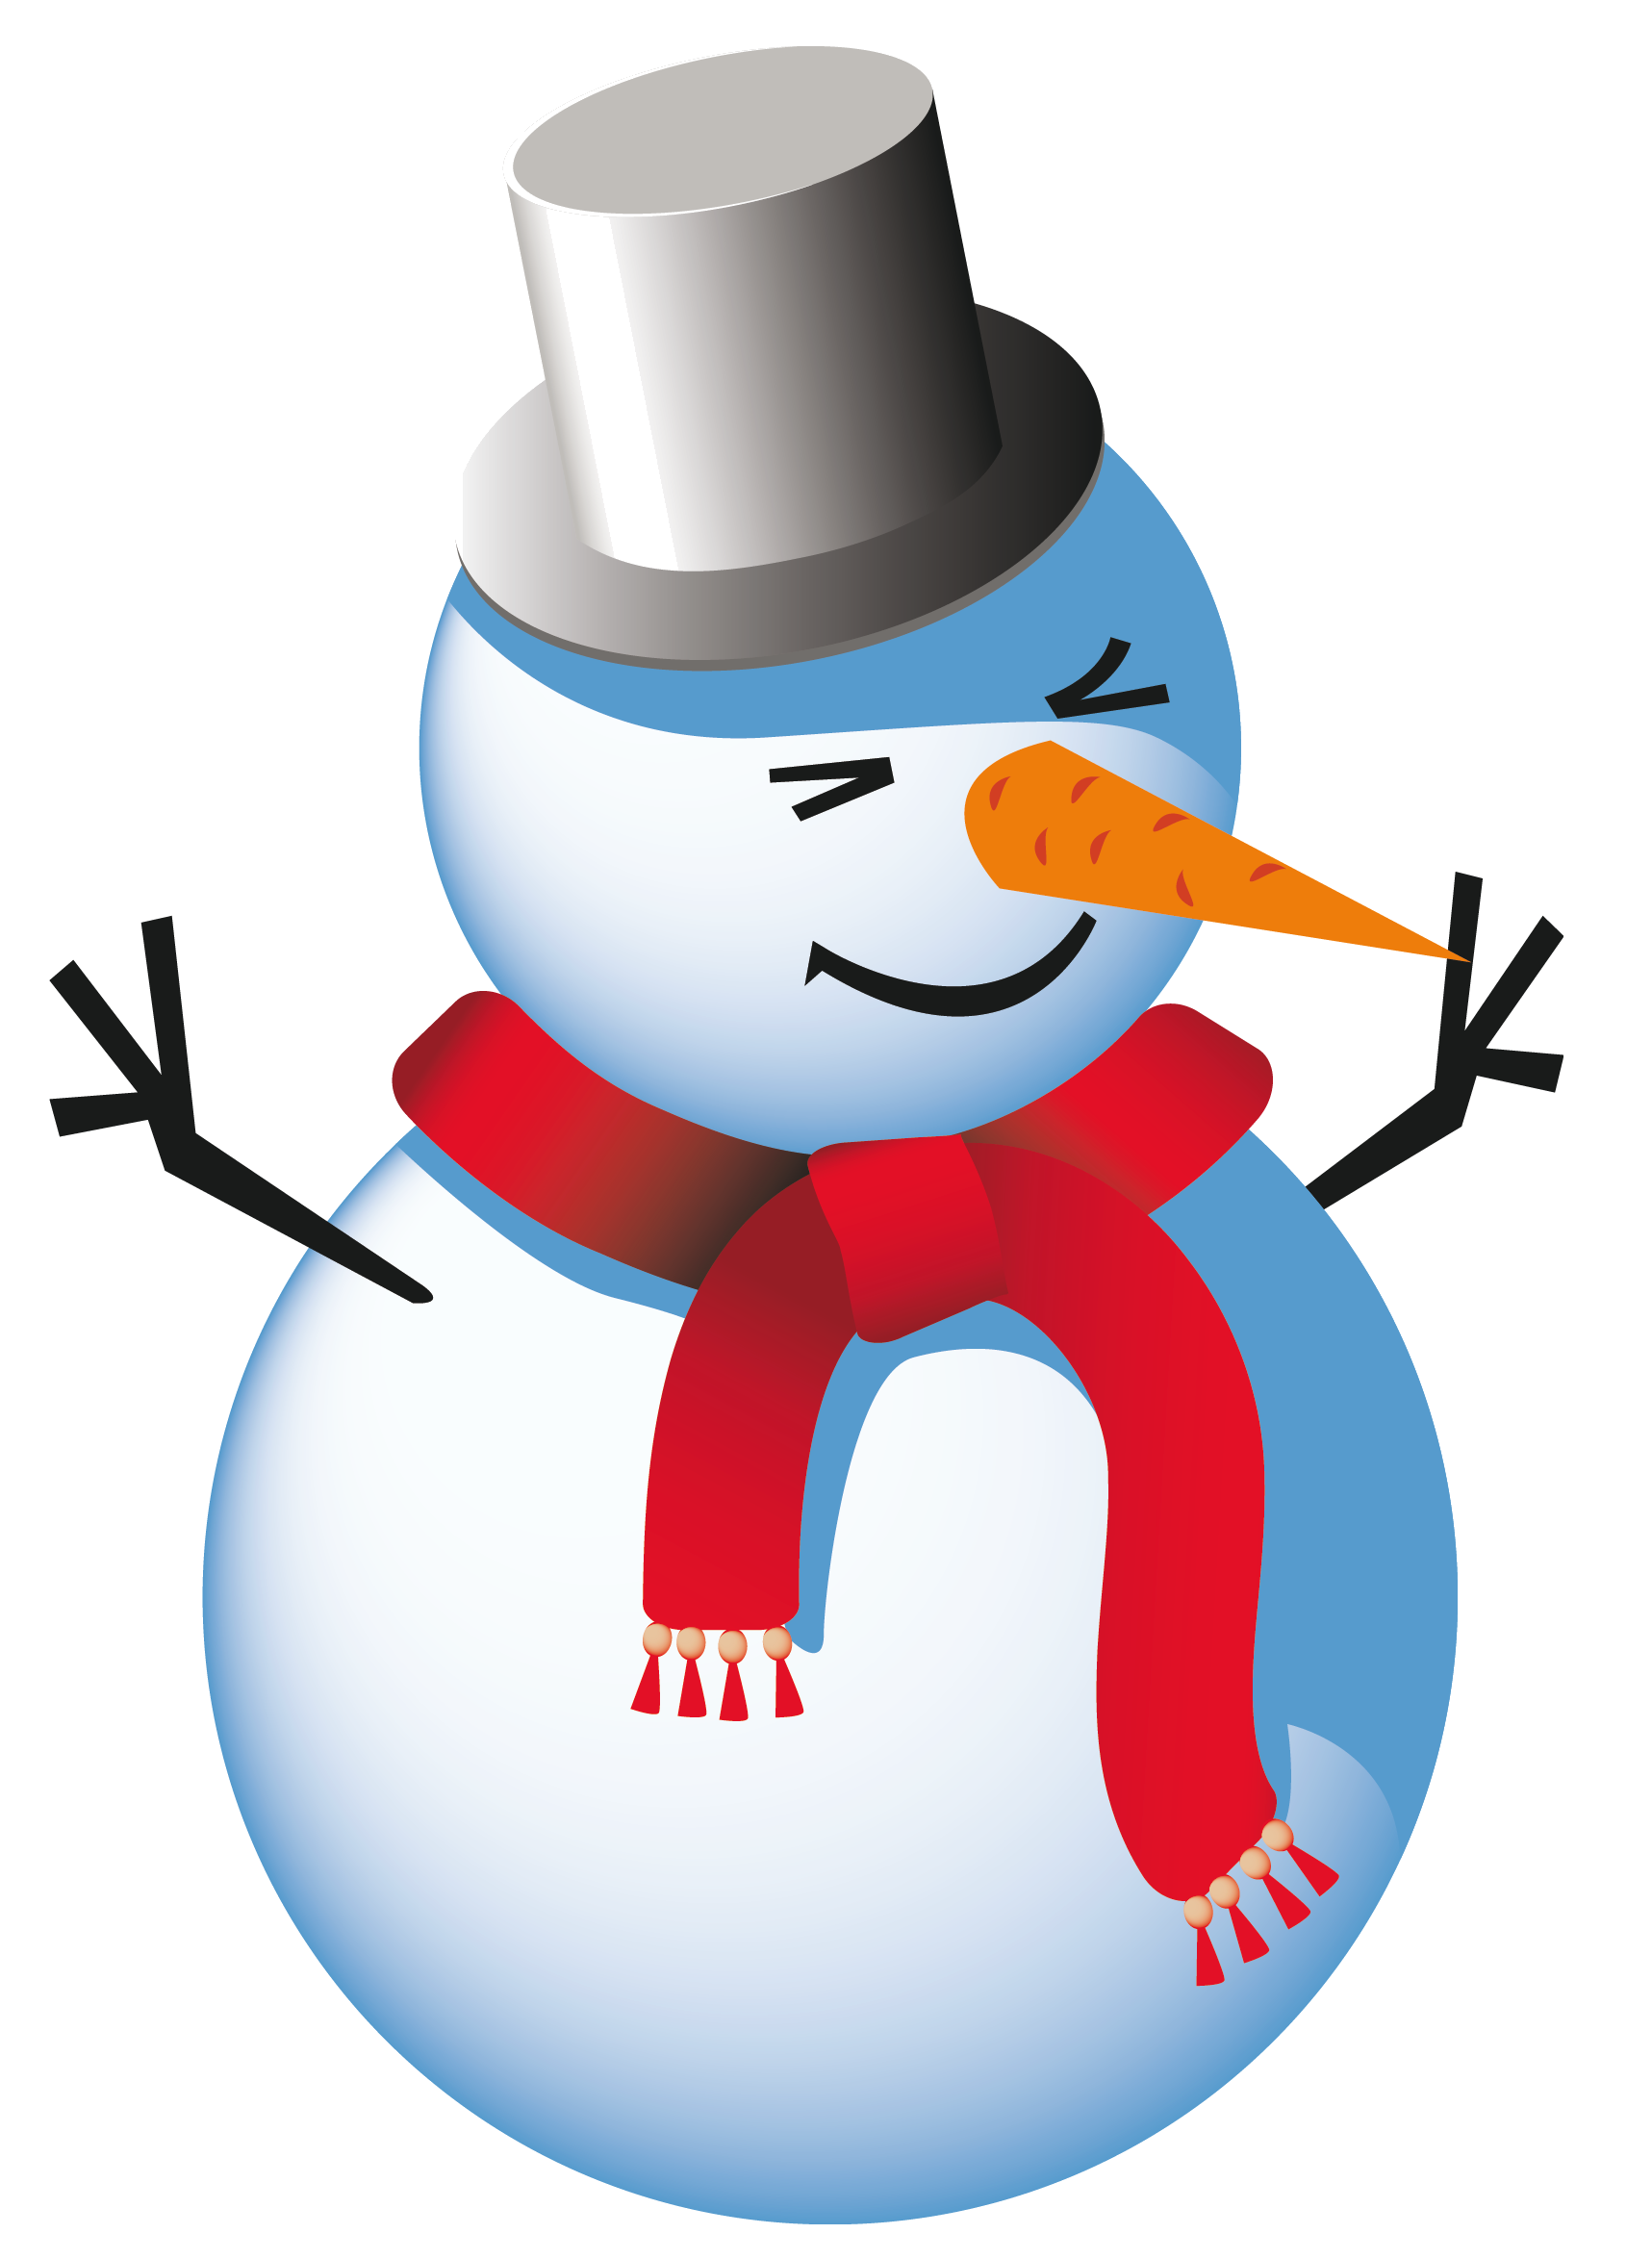 Skillful clipart banner library stock Snowman X Skillful Ideas Clipart Images Cute Clip Art Free ... banner library stock